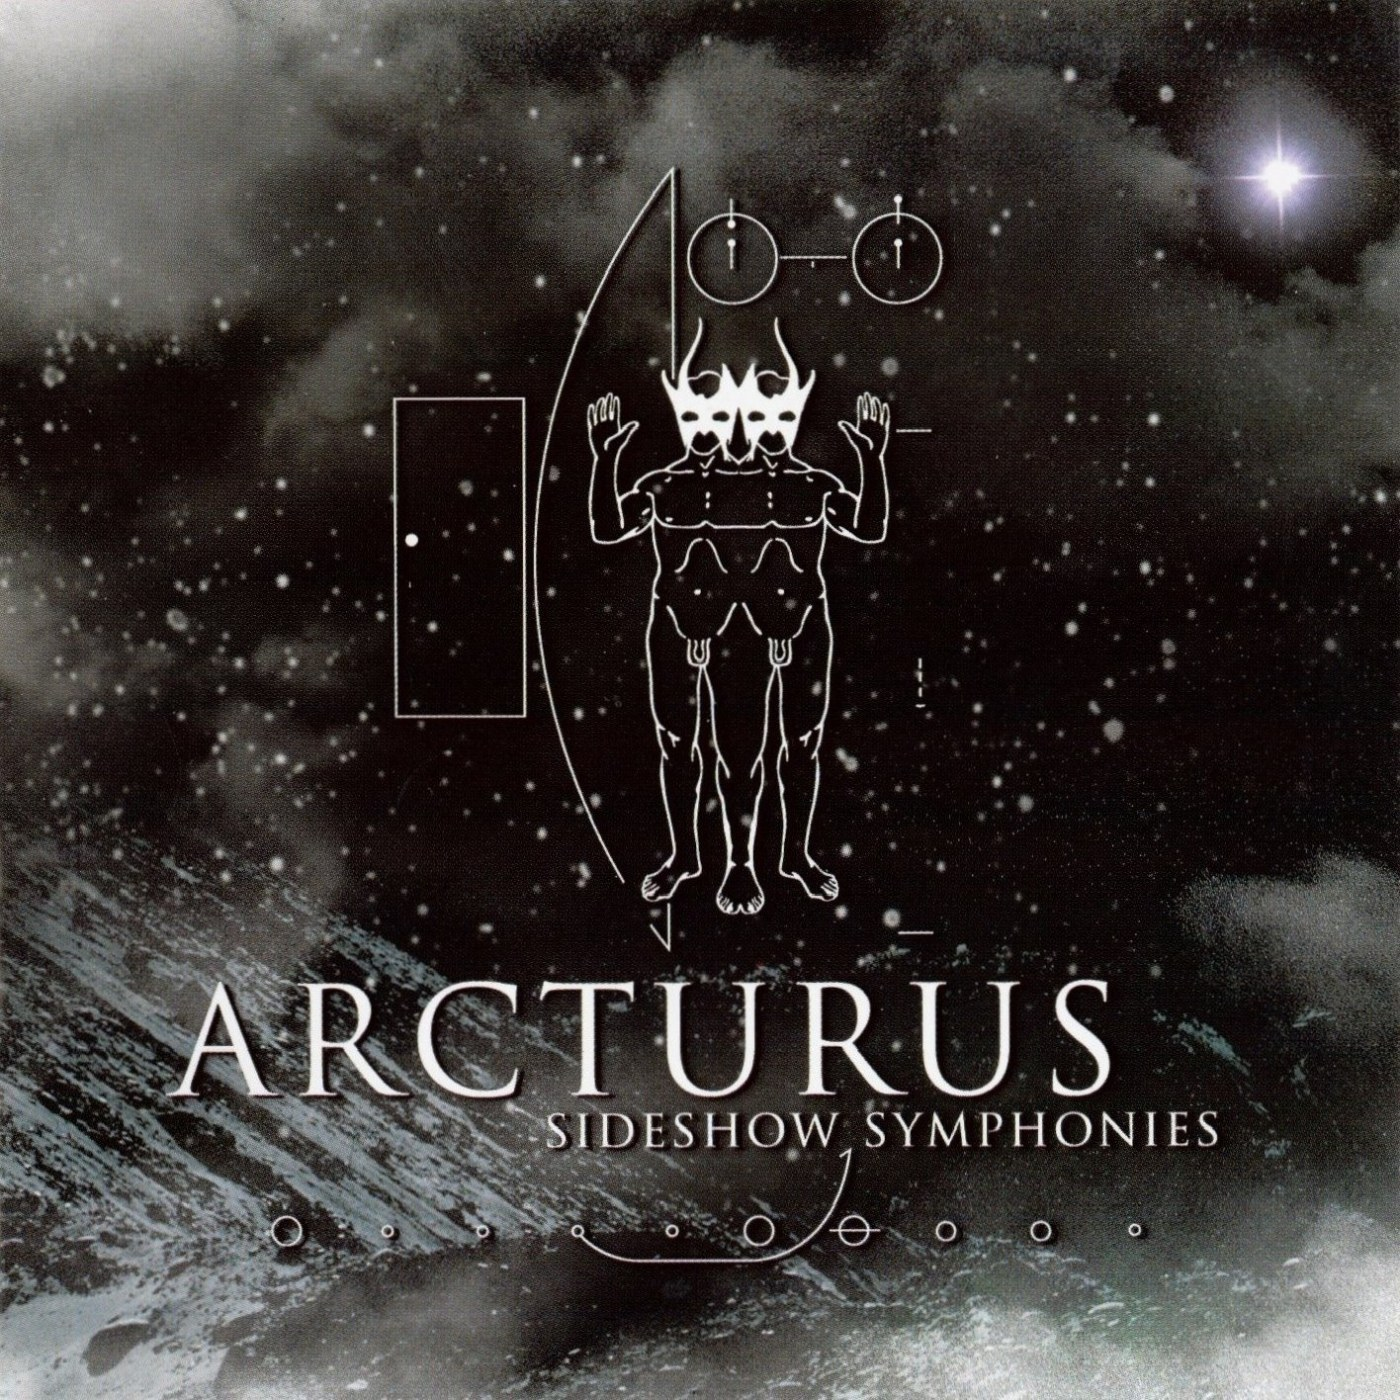 Review for Arcturus - Sideshow Symphonies